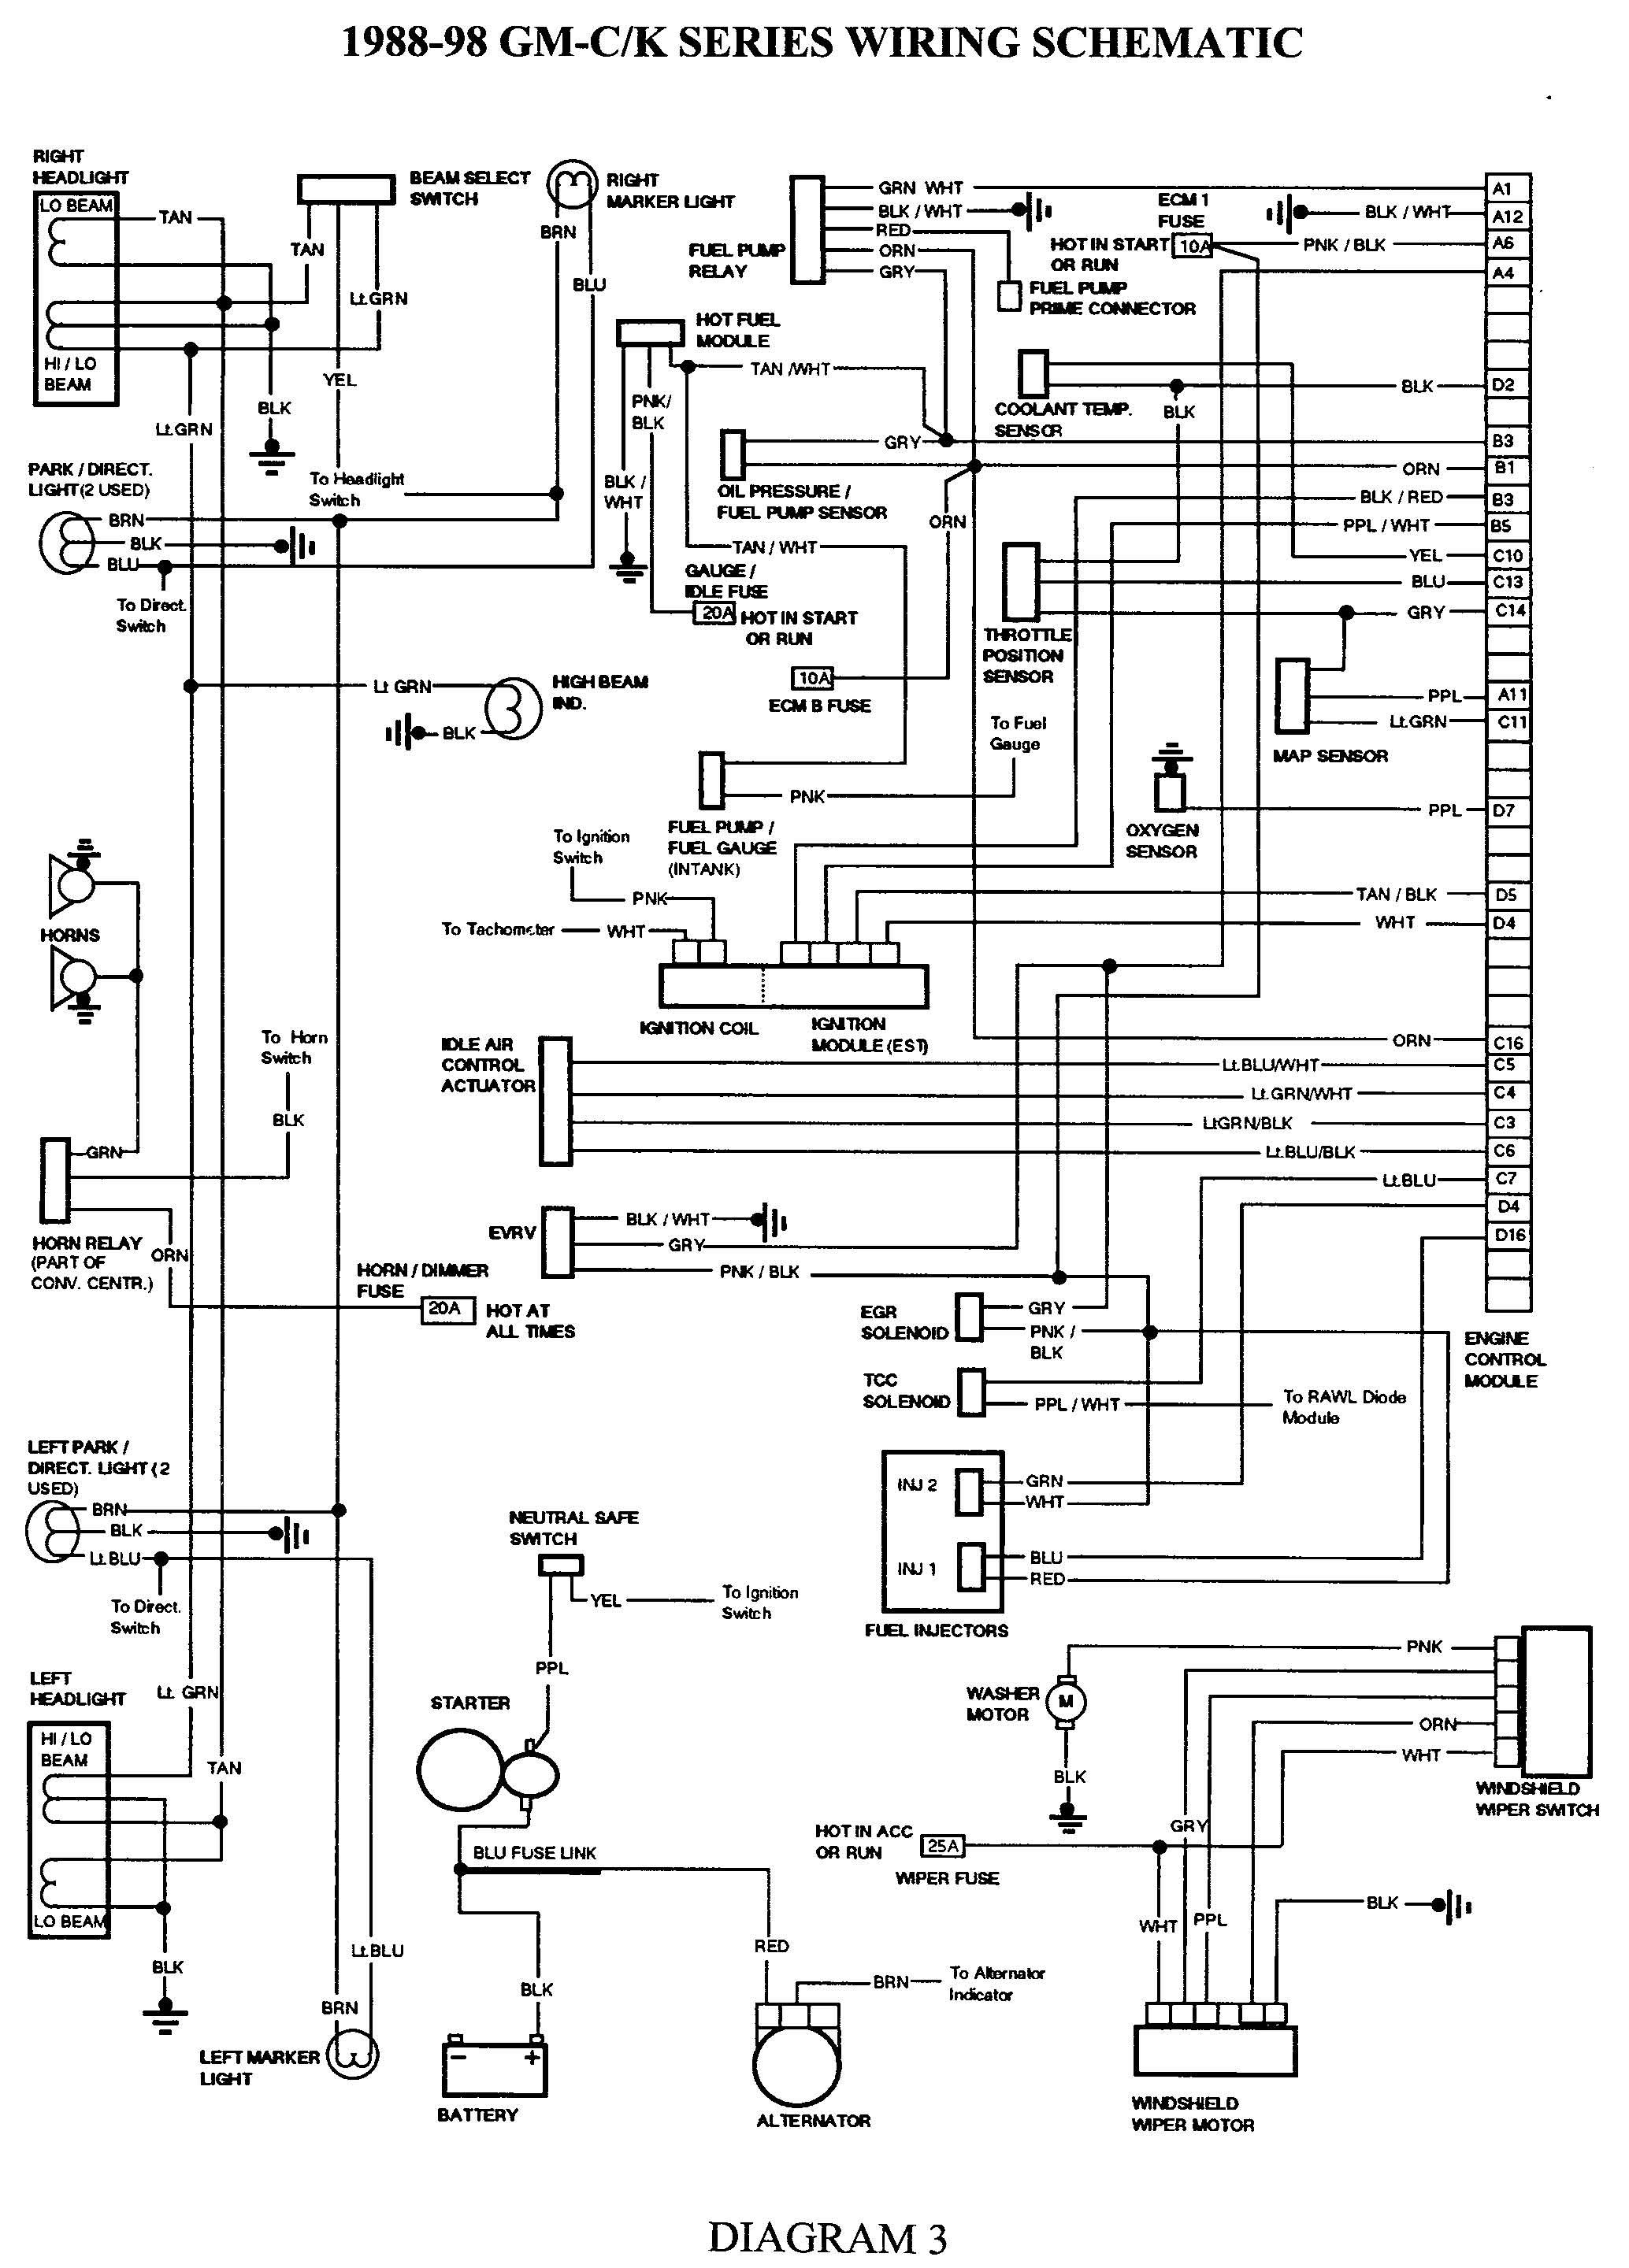 1999 Chevy Astro Wiring Diagram - wiring diagram electron-while -  electron-while.labottegadisilvia.it | 1998 Chevrolet Astro Van Wiring Diagram |  | electron-while.labottegadisilvia.it